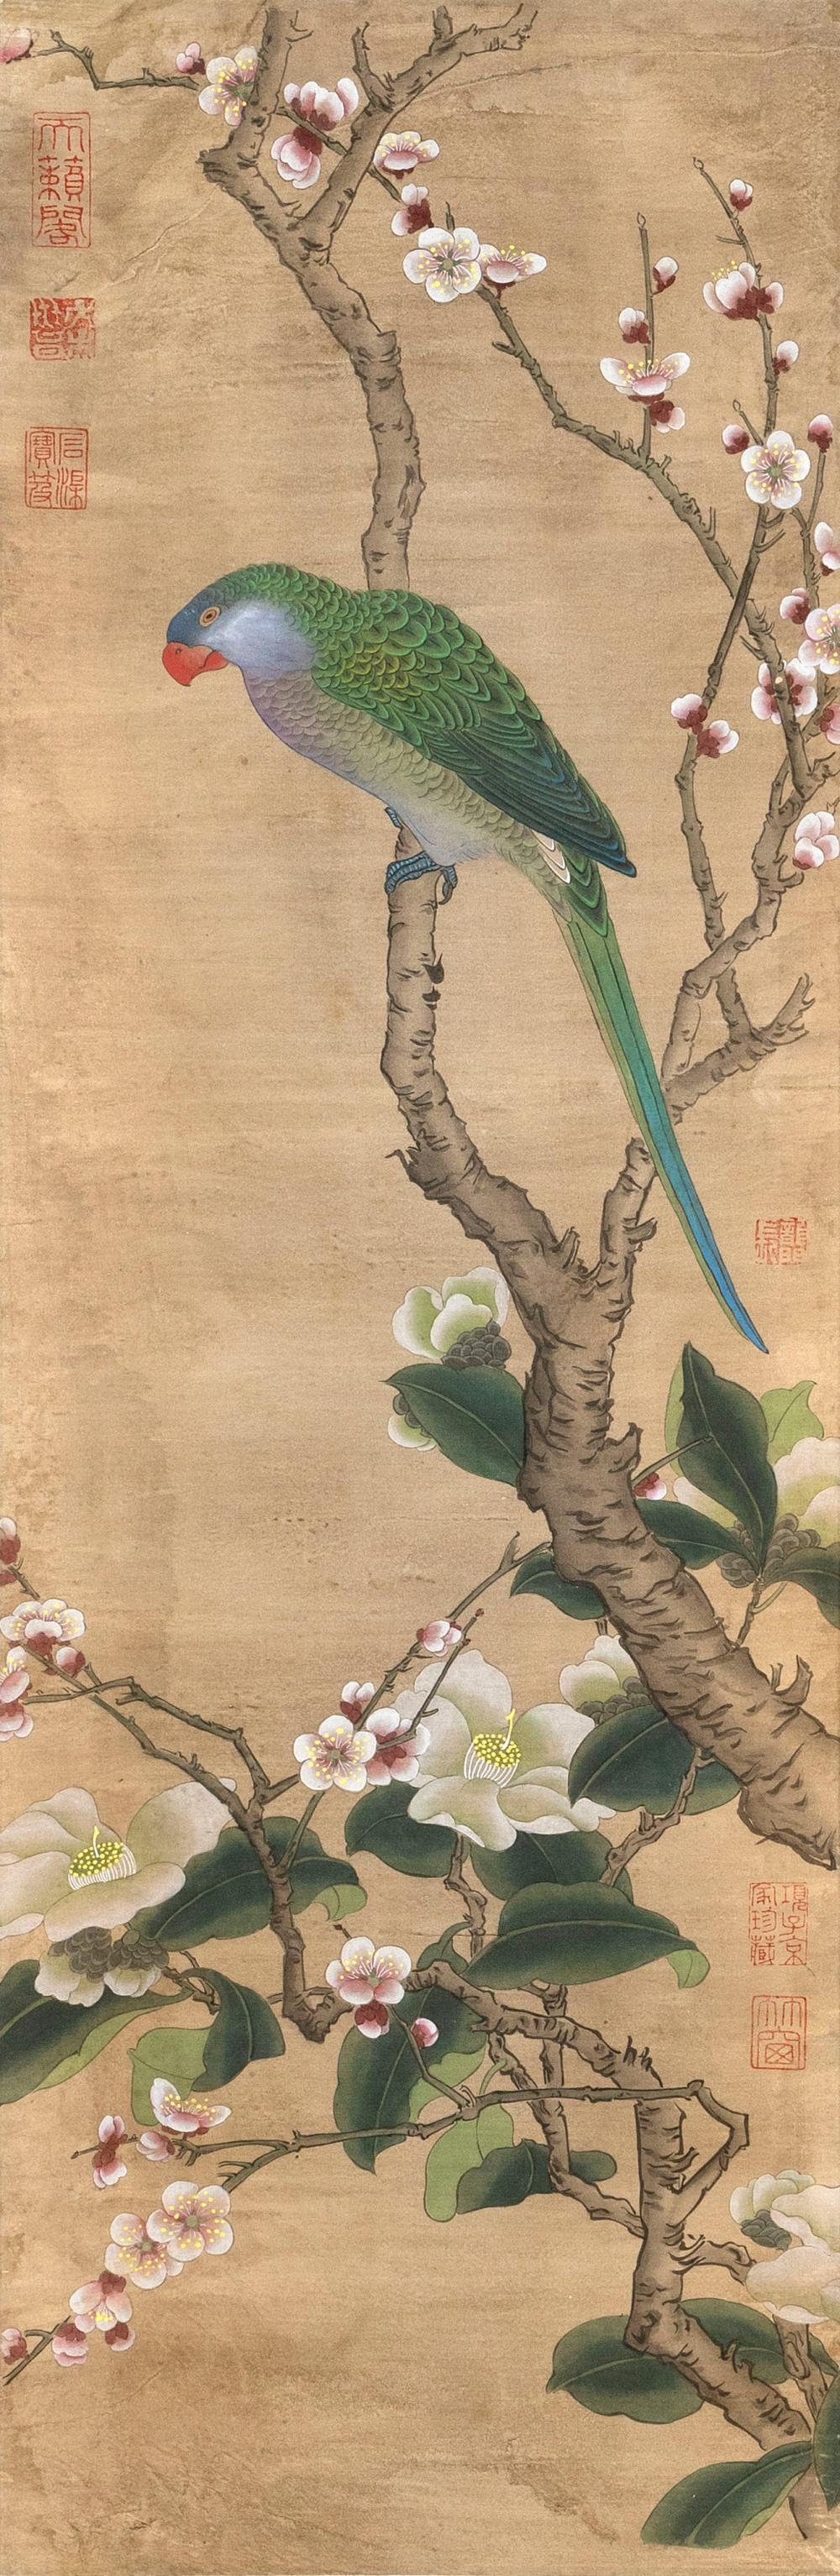 "CHINESE PAINTING ON PAPER After an 18th Century example. Depicts a green parrot on a tree branch. 34.25"" x 10.75"". Provenance: The S..."